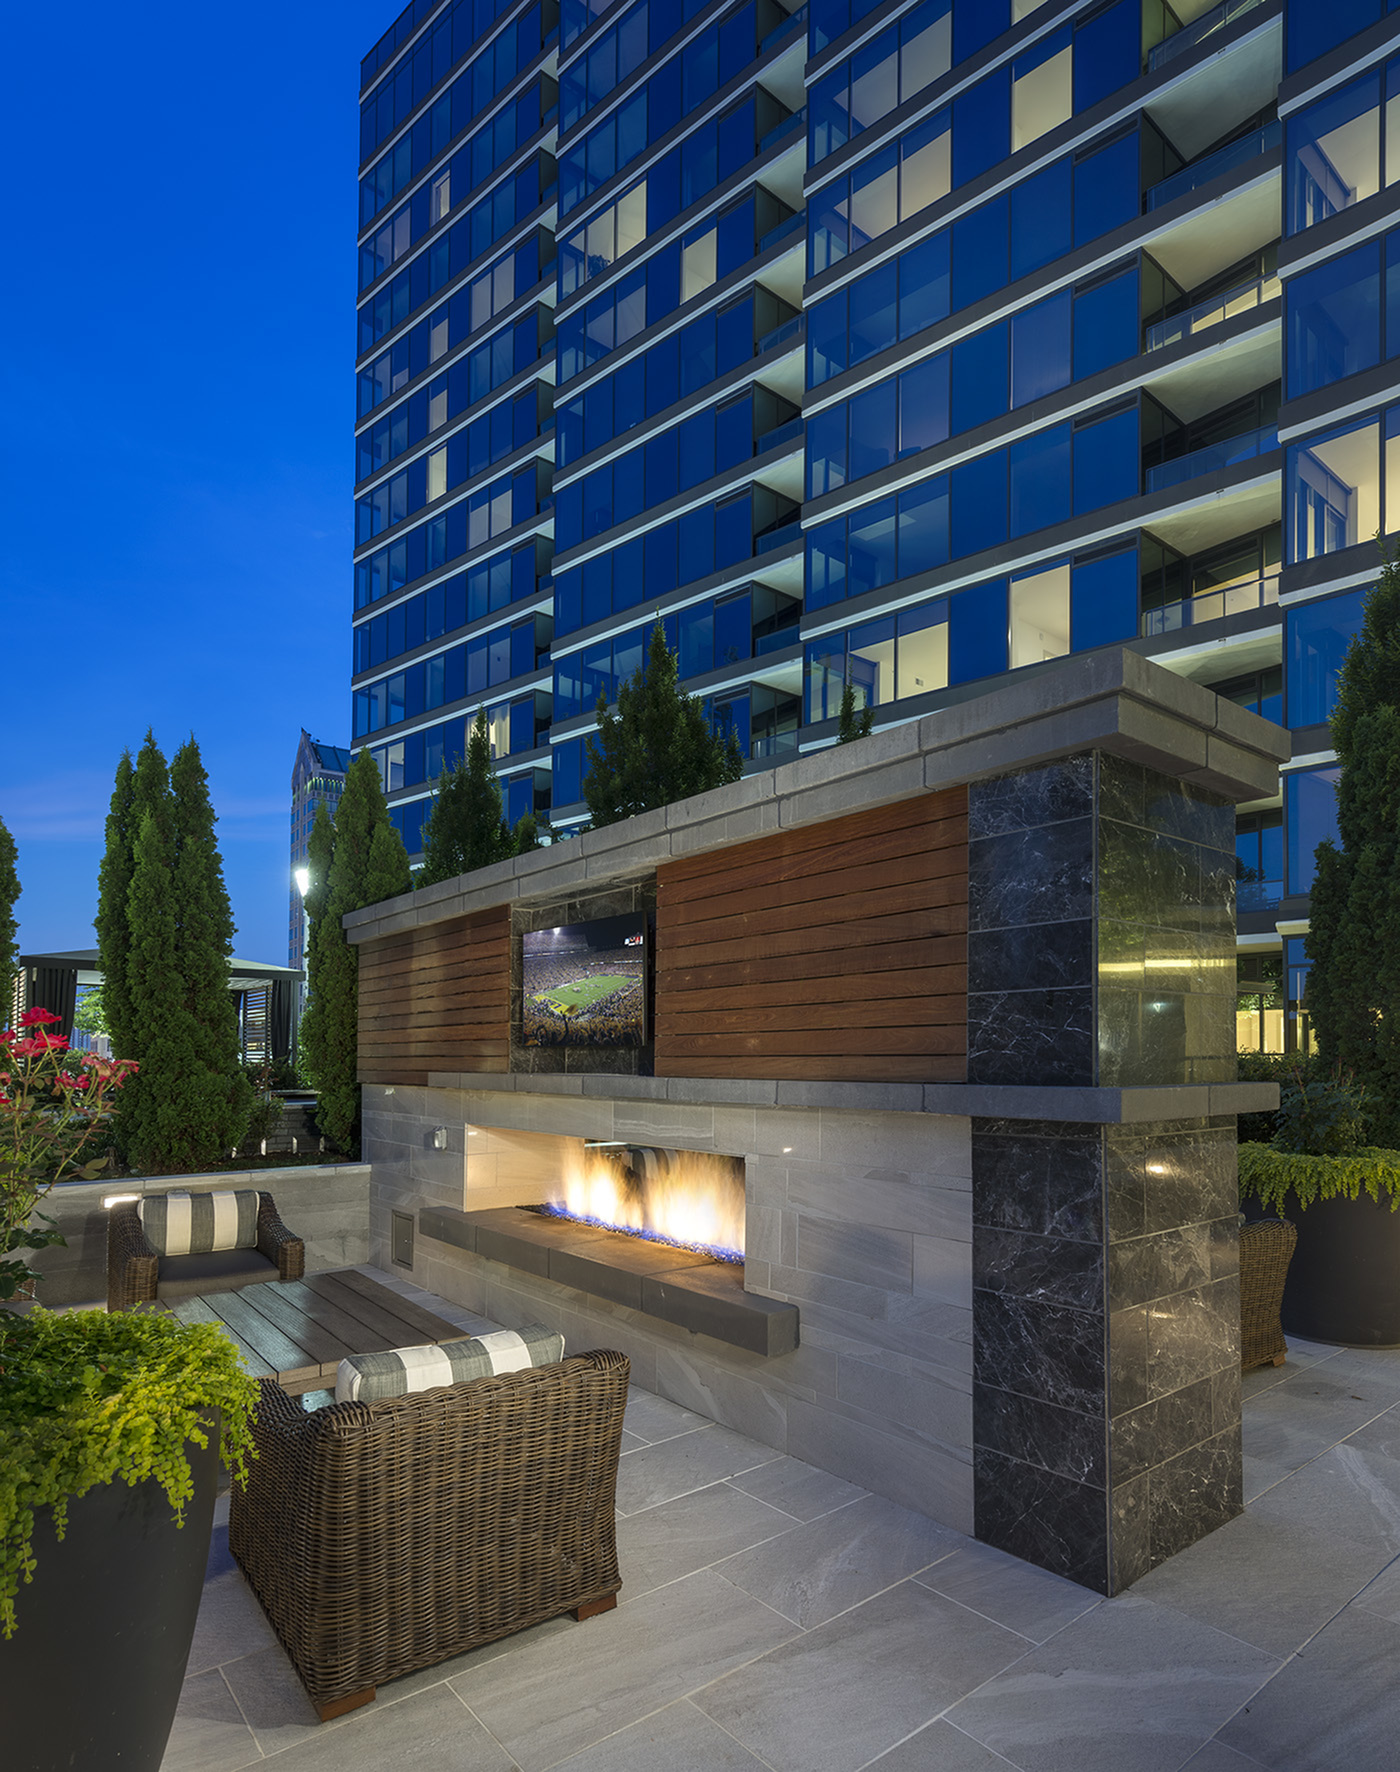 Outdoor Fireplace at Hanover Buckhead Village